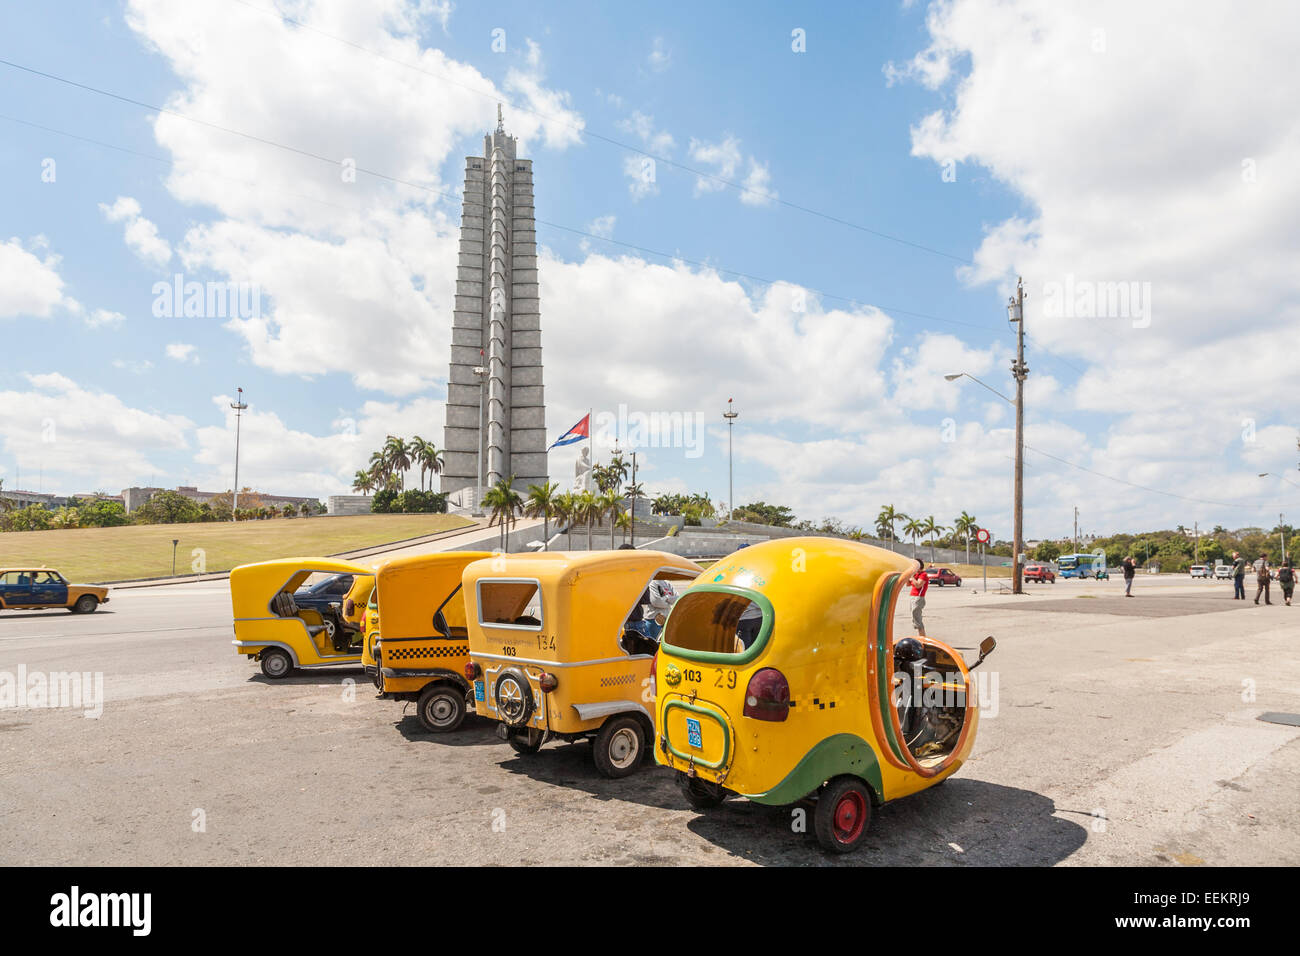 Memorial Jose Marti, with a row of typical traditional yellow coco taxis waiting lined up in Plaza de la Revolución - Stock Image